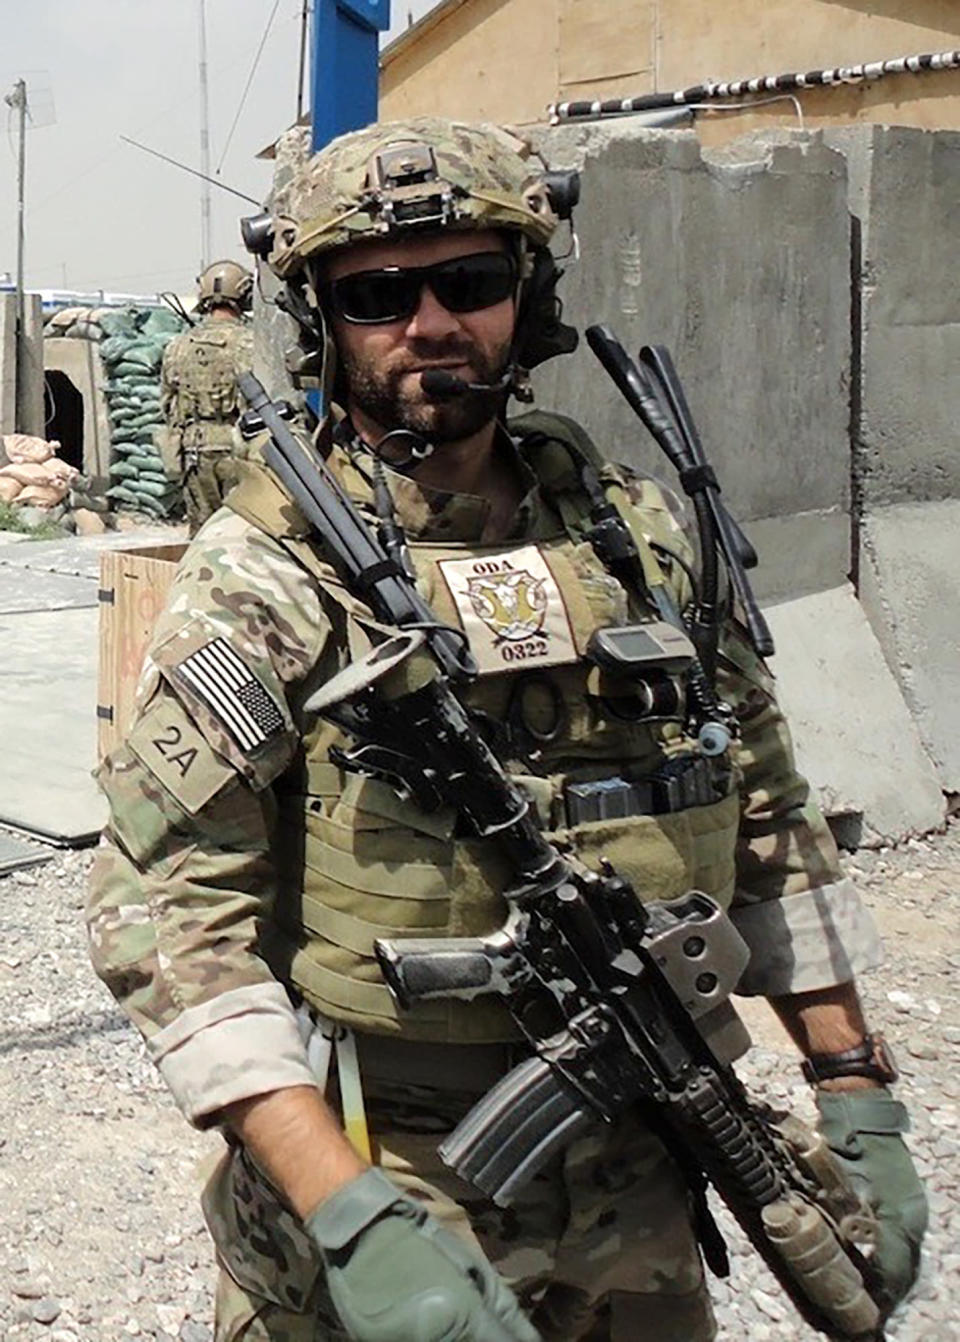 In this undated photo provided by Ryan Brummond, U.S. Special Forces Officer Ryan Brummond is seen in Afghanistan. Mohammad Khalid Wardak or Khalid, as he's called by his friends, had no intention of leaving Afghanistan, where he was a high-profile national police officer who'd worked alongside Brummond and American special forces to defeat the Taliban. Then with stunning speed, his government collapsed. Now he is in hiding with his wife and four children, wounded and hunted by the Taliban, desperately hoping that American officials will repay his loyalty by helping his family escape almost certain death. (Ryan Brummond via AP)